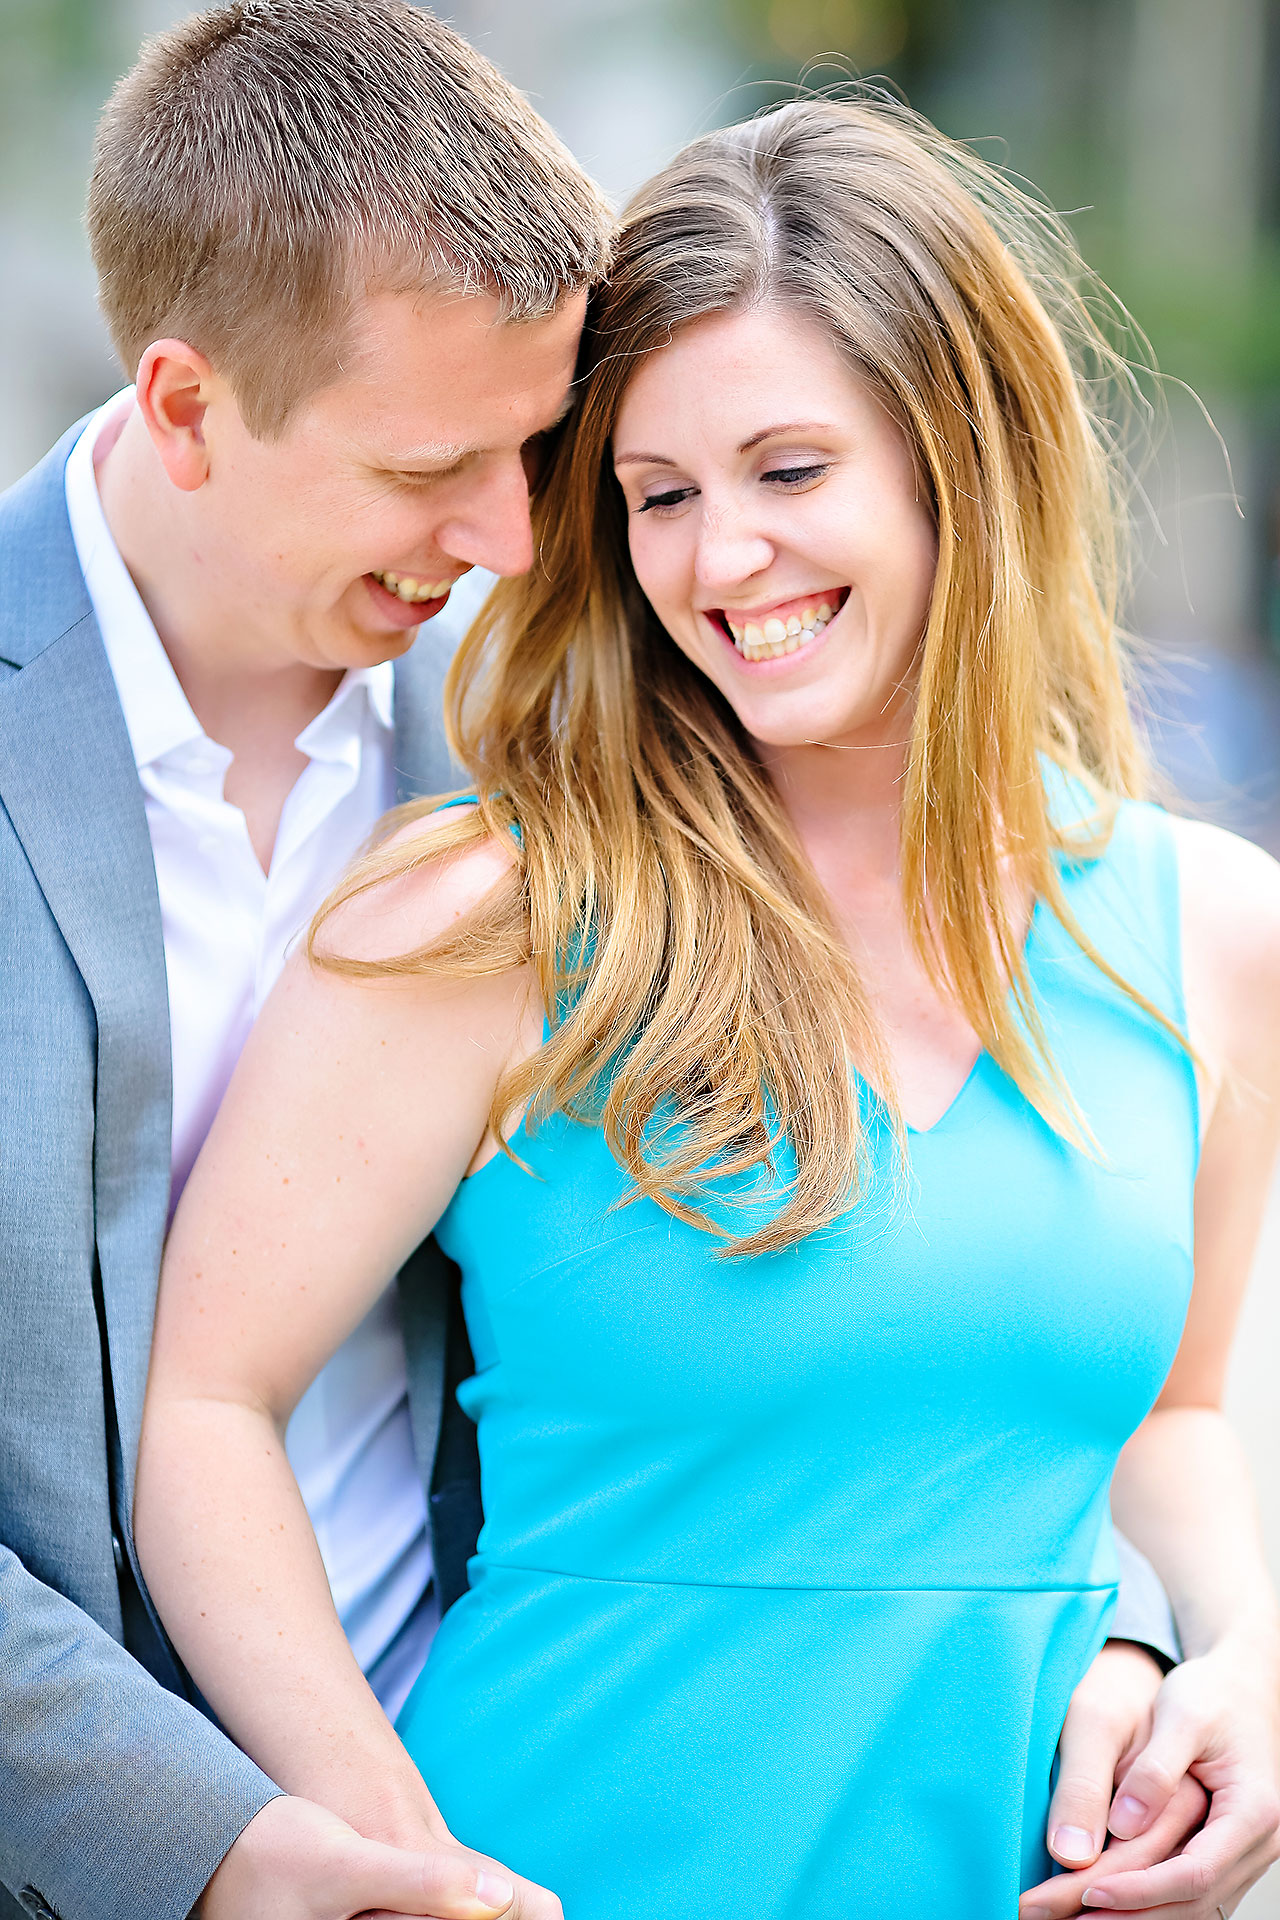 Chelsea Jeff Downtown Indy Engagement Session 033